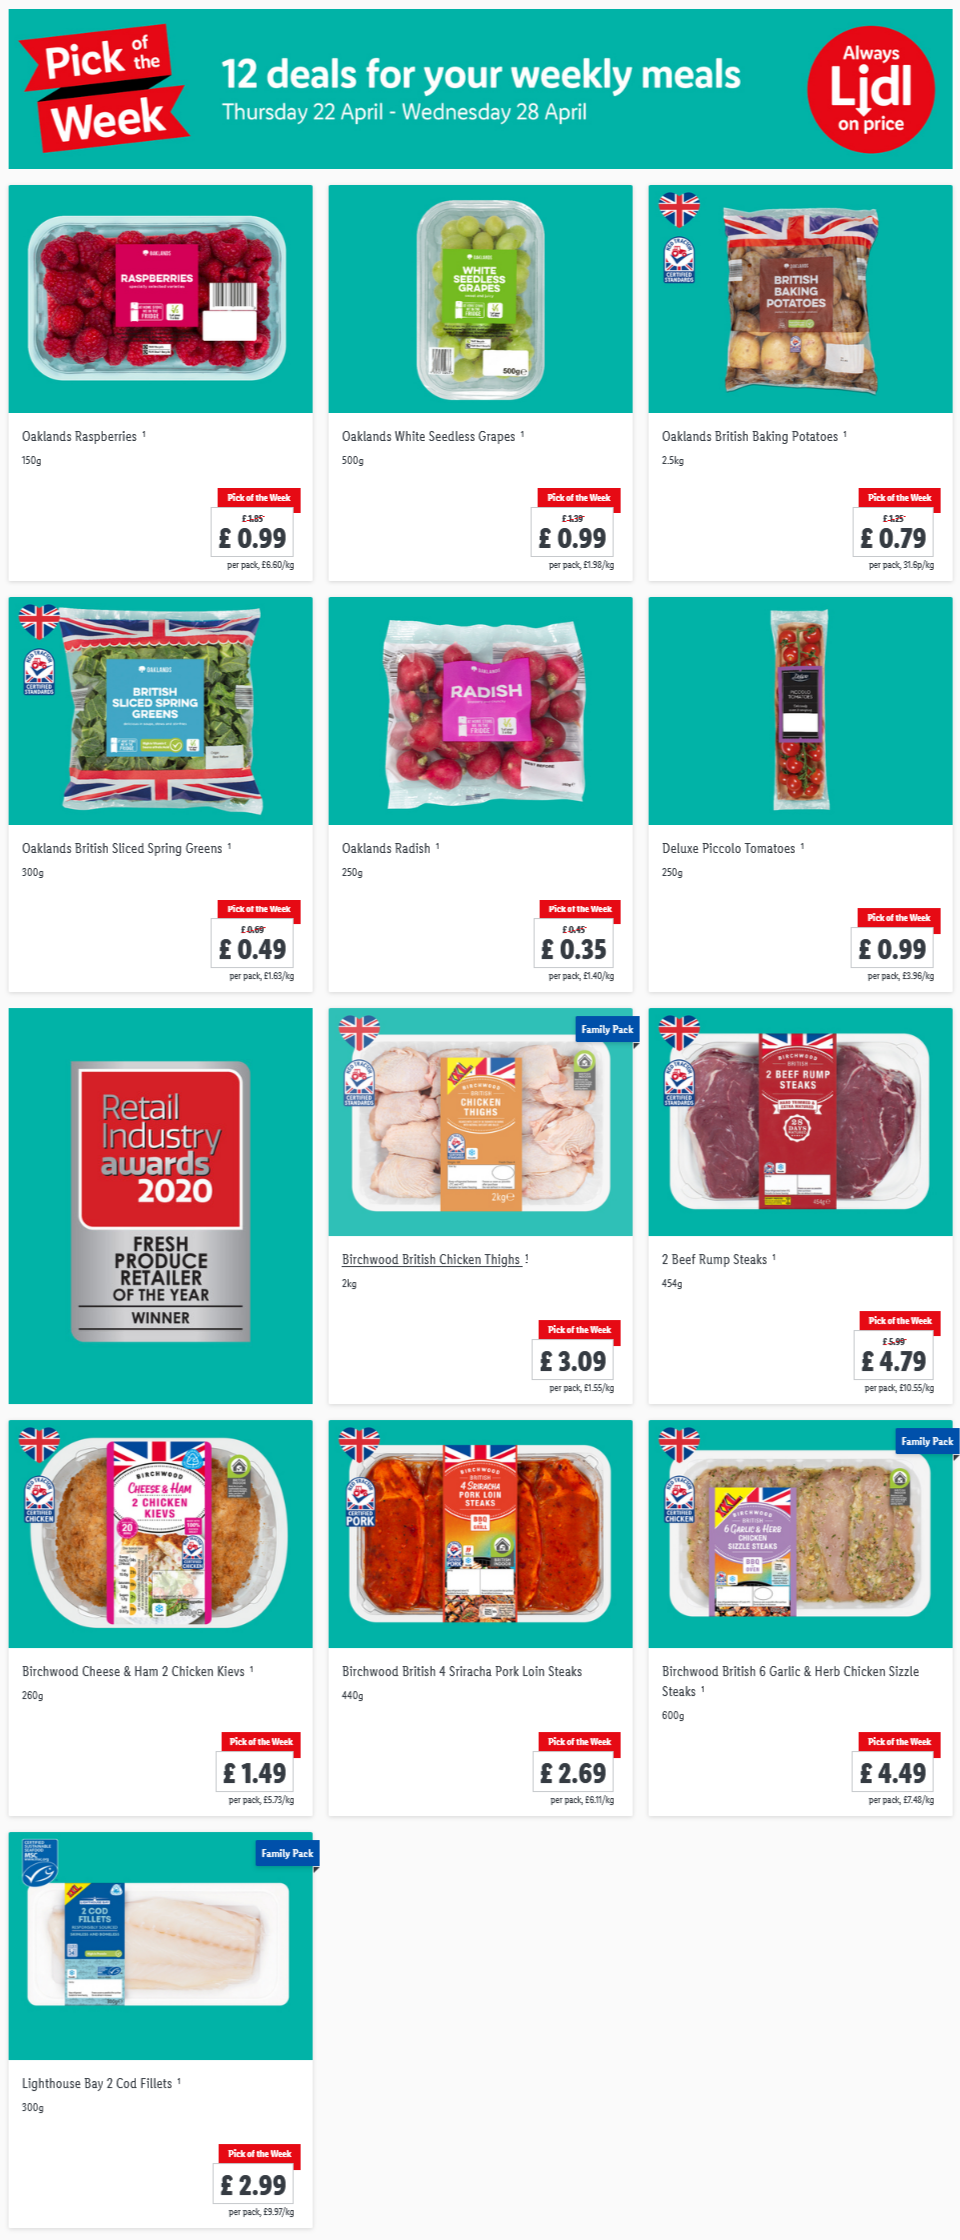 LIDL Pick of The Week 22nd April - 28th April 2021 Next Week Preview